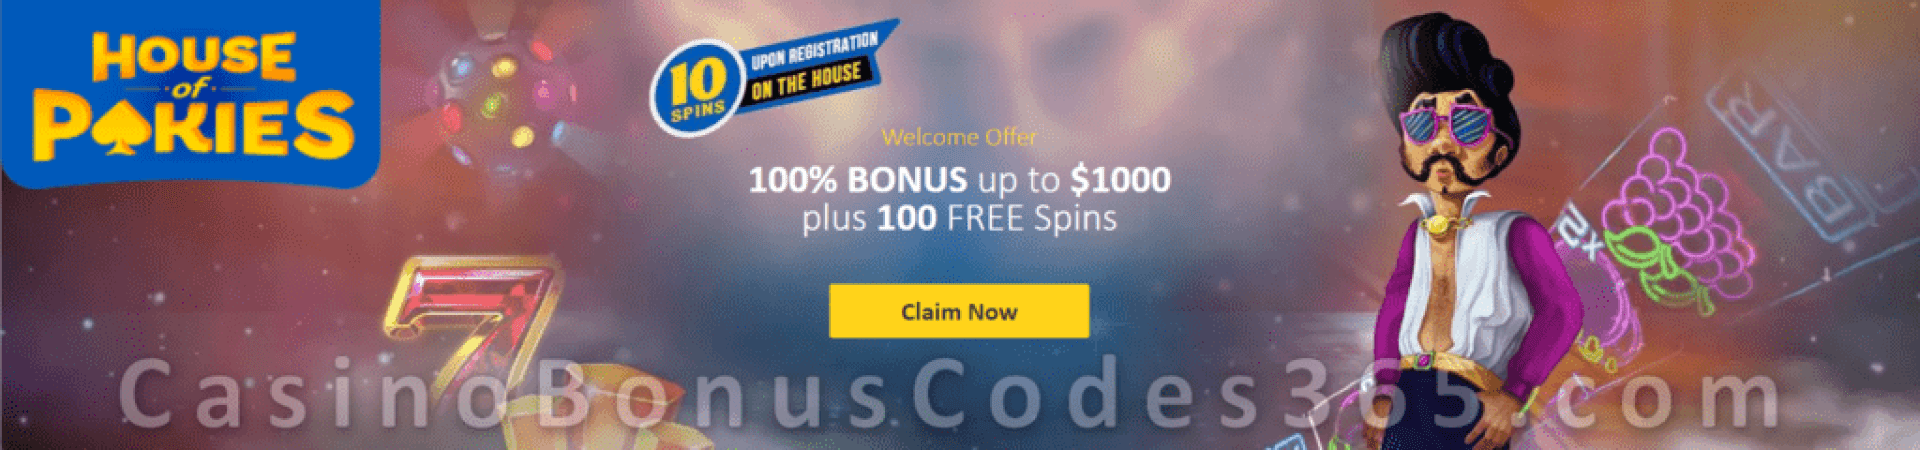 House of Pokies 10 No Deposit FREE Spins and 100% Match up to $1000 plus 100 FREE Spins on top Welcome Package